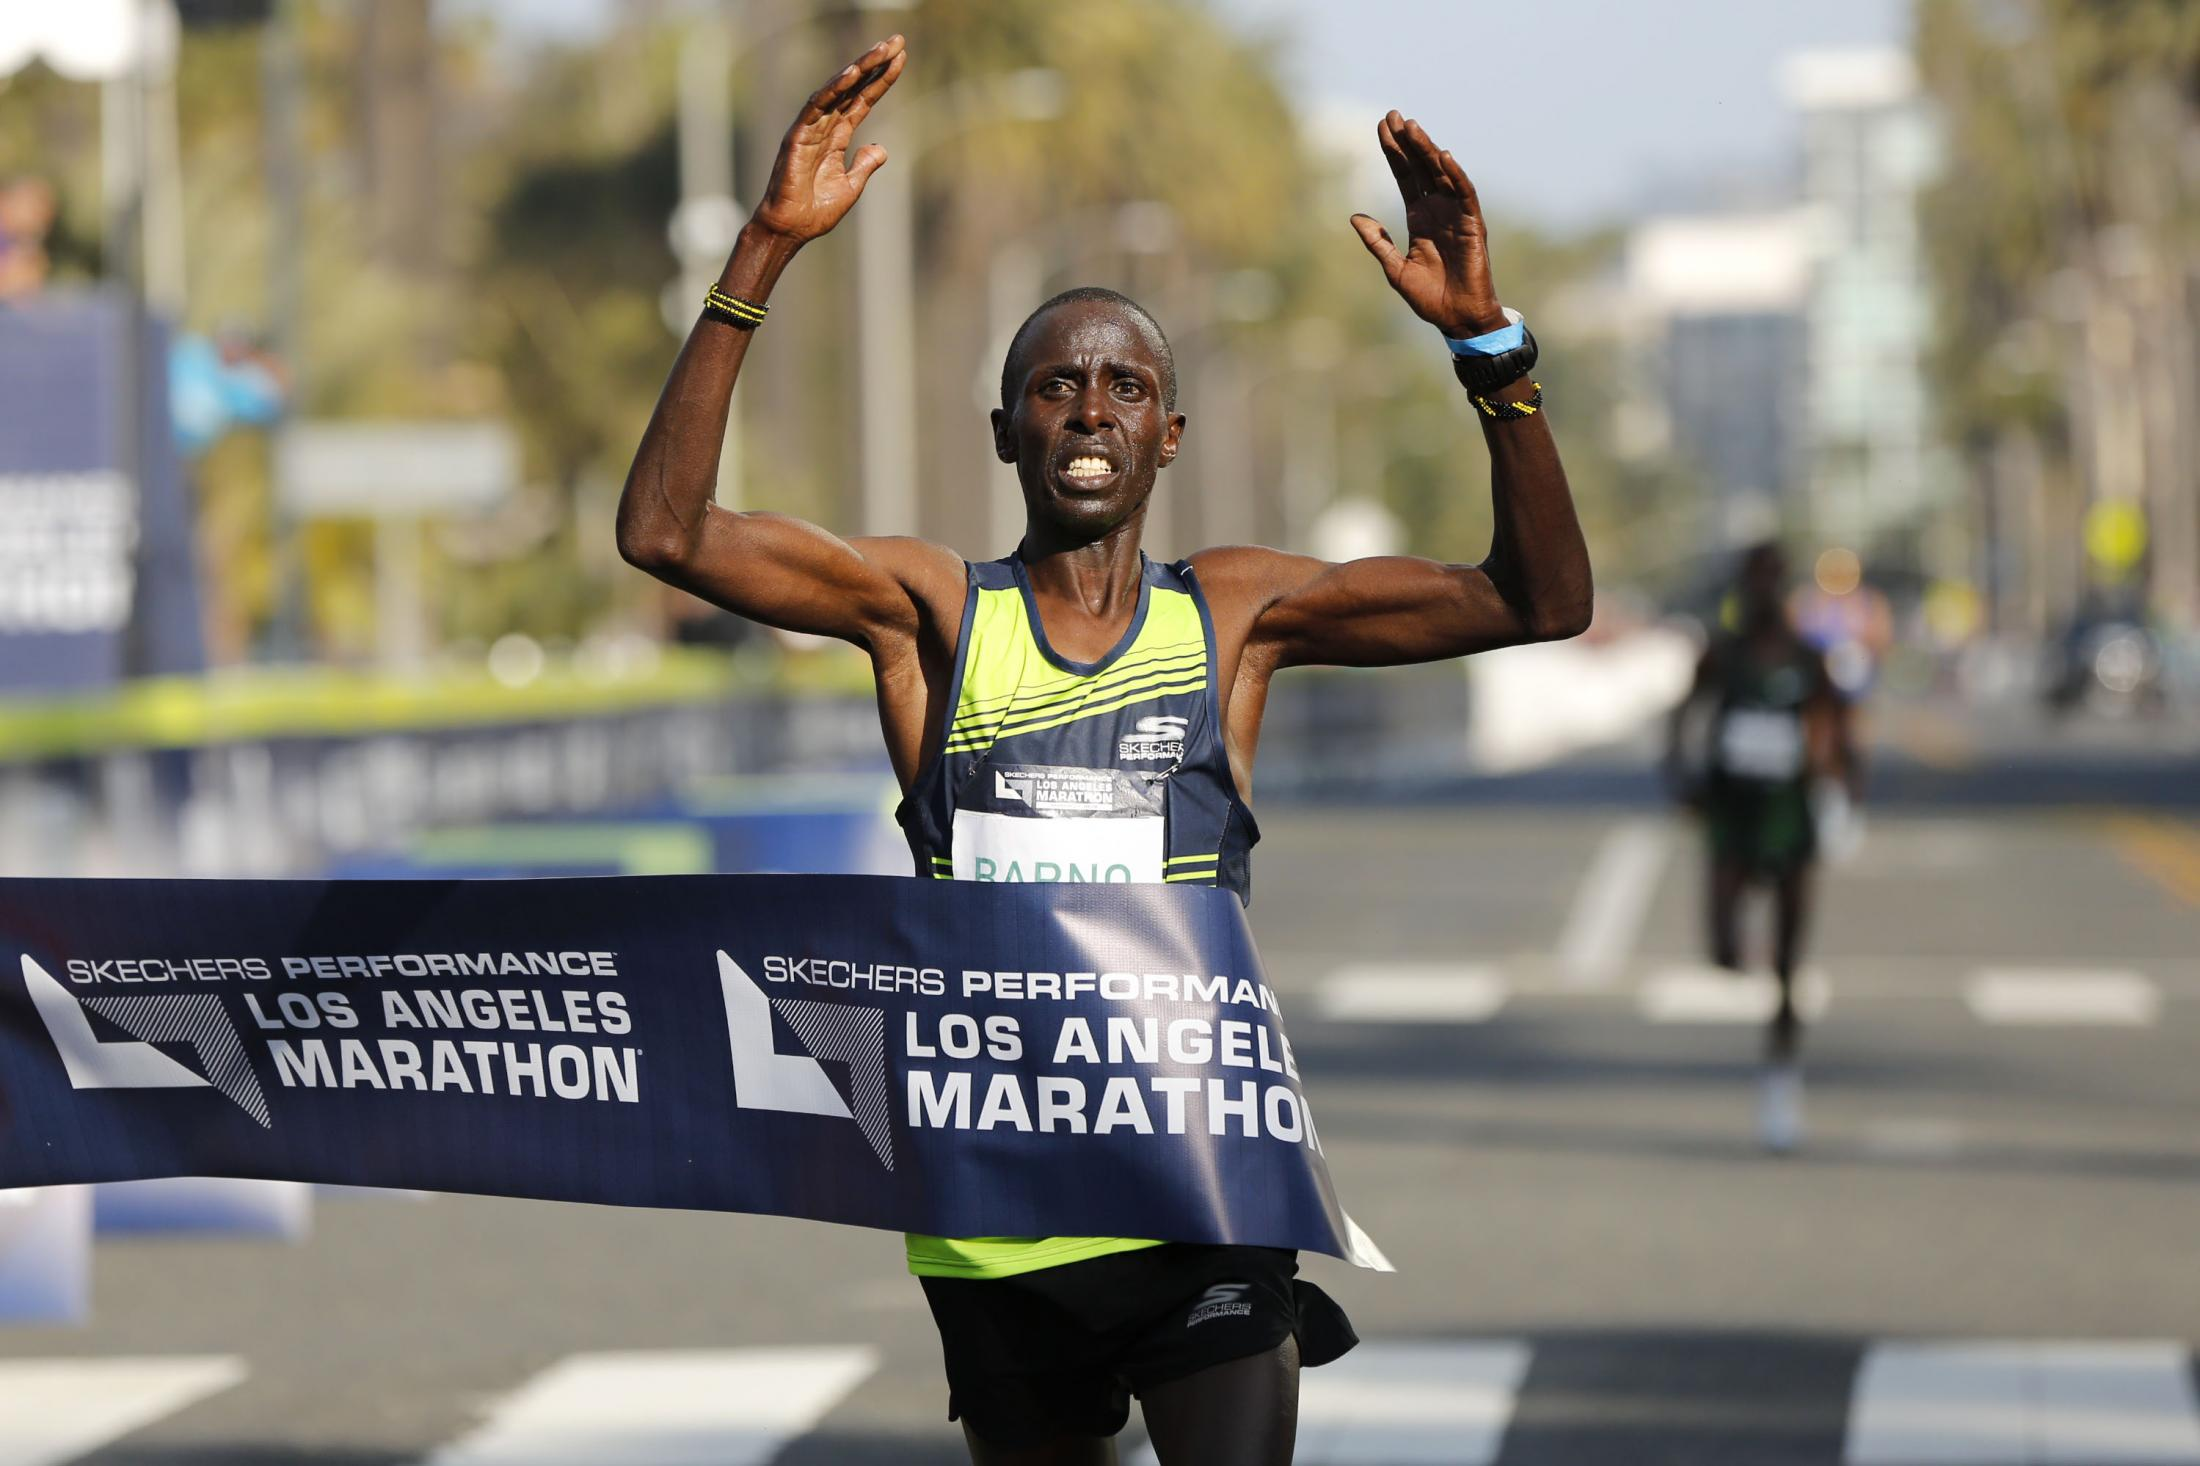 LOS ANGELES, CALIFORNIA - MARCH 24:  Elisha Barno of Kenya crosses the finish line to win the 2019 Skechers Performance Los Angeles Marathon in 2 hours, 11 minutes, 45 seconds on March 24, 2019 in Los Angeles, California. (Photo by Katharine Lotze/Getty Images)